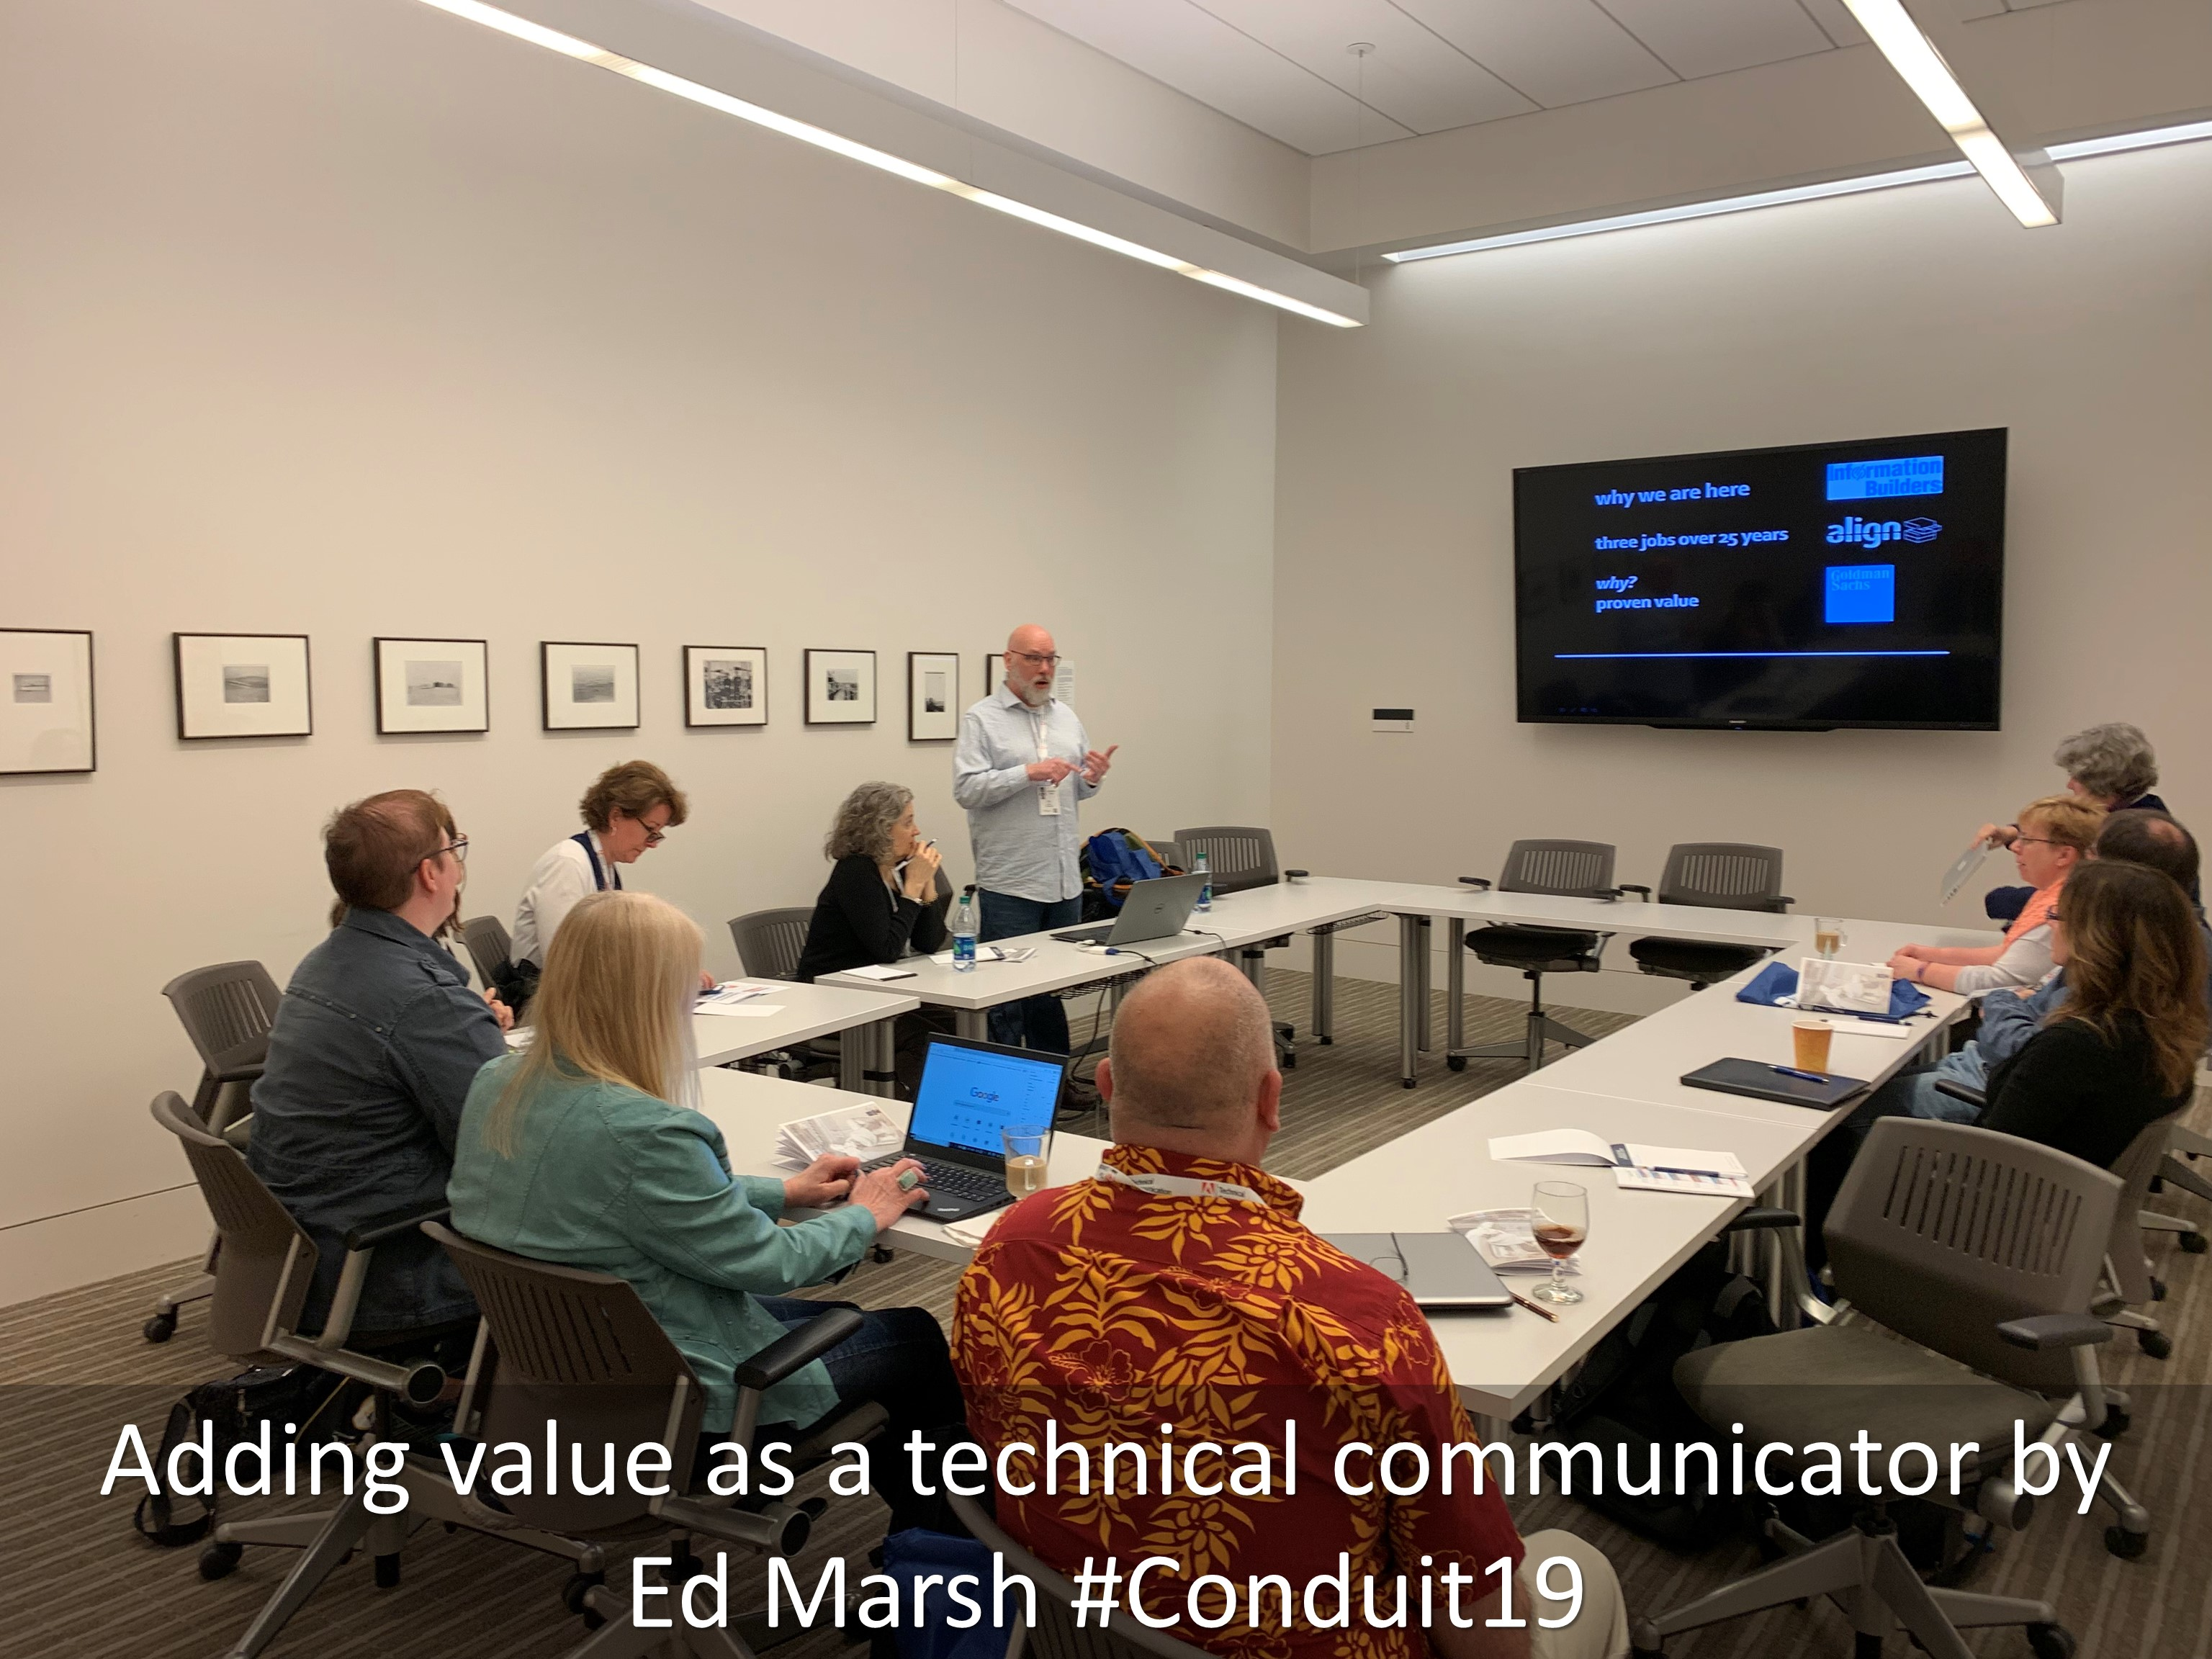 06 Adding value as a technical communicator by EdMarsh Conduit19